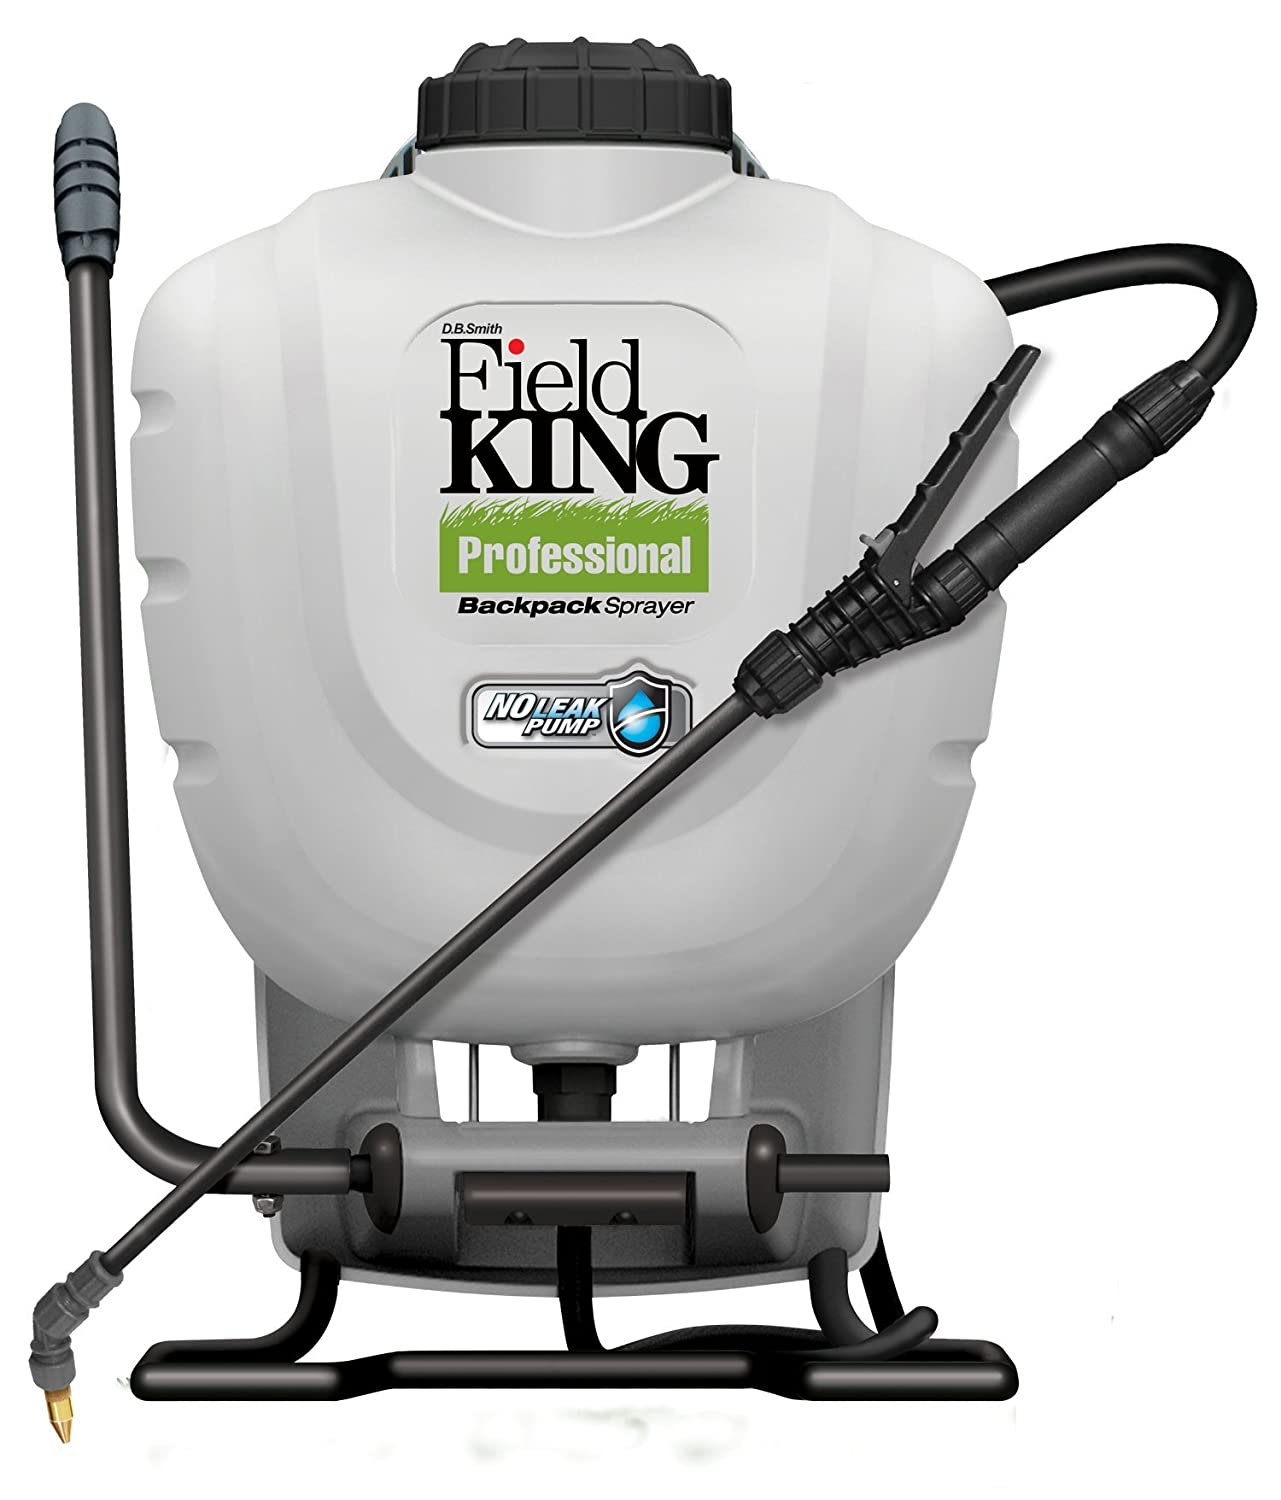 Field King Professional 190328 No Leak Pump herbicide sprayer